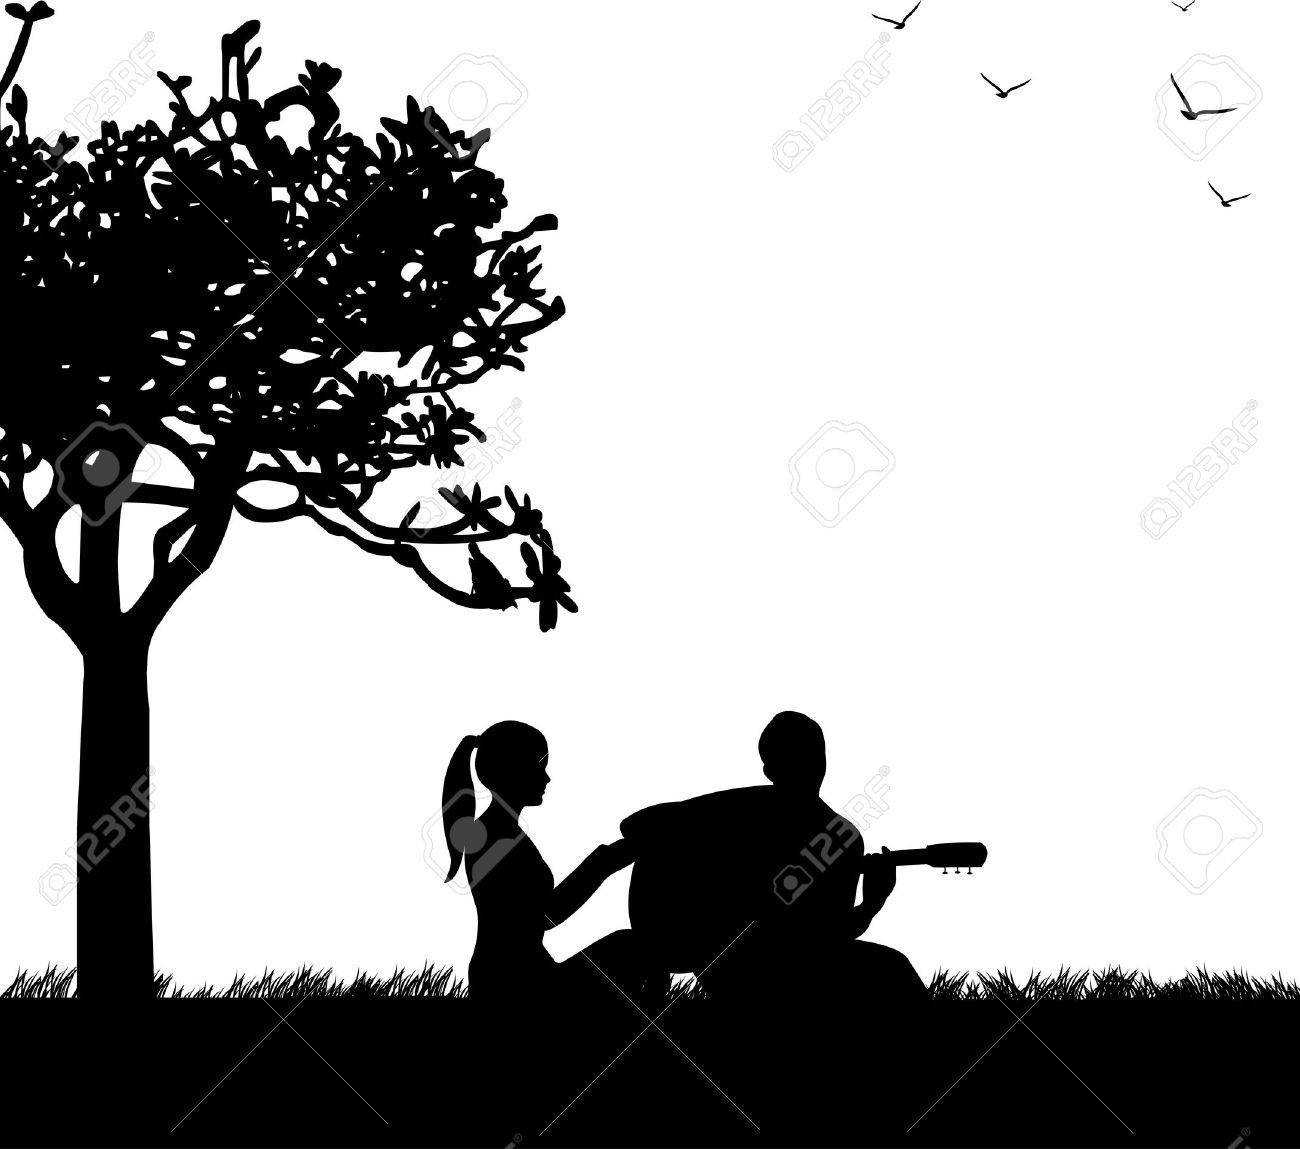 Couple in love where a guy plays guitar in park under the tree silhouette Stock Vector - 17953733